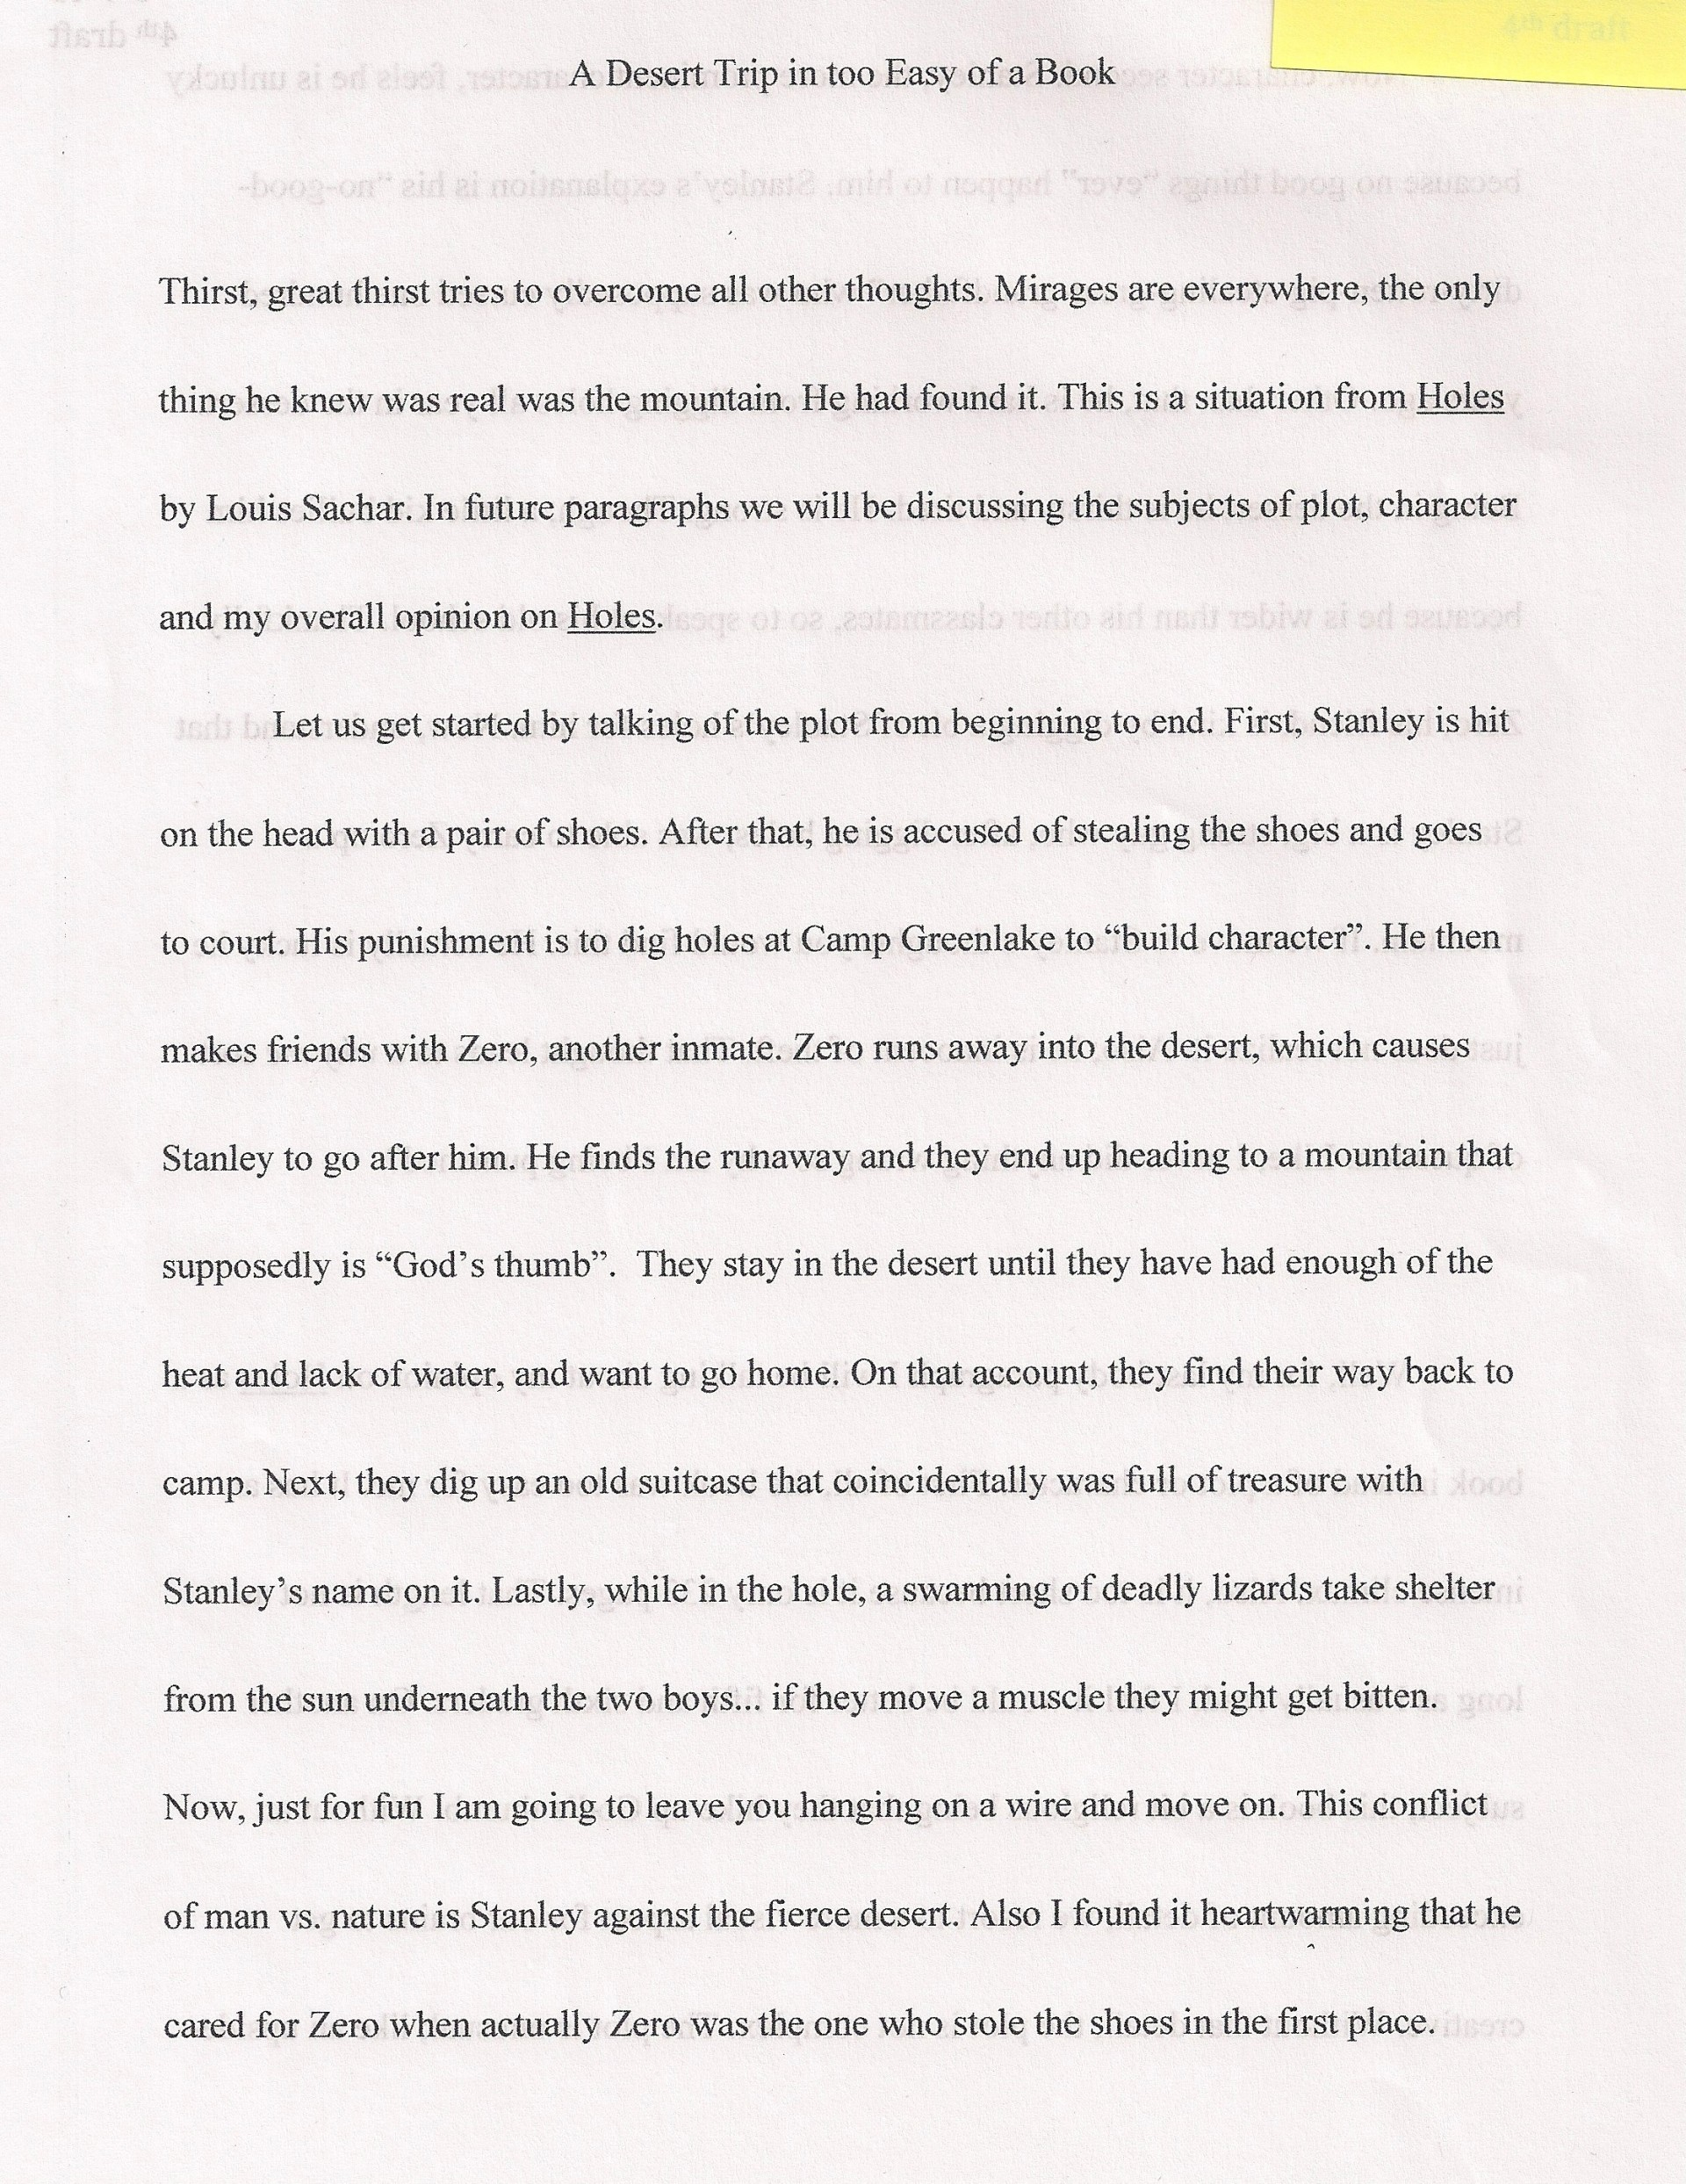 003 Argumentative Essay Examples 6th Grade Writings And Essays Paragraph Example Argument Samples Speech Piece High School With Shocking Persuasive 1920